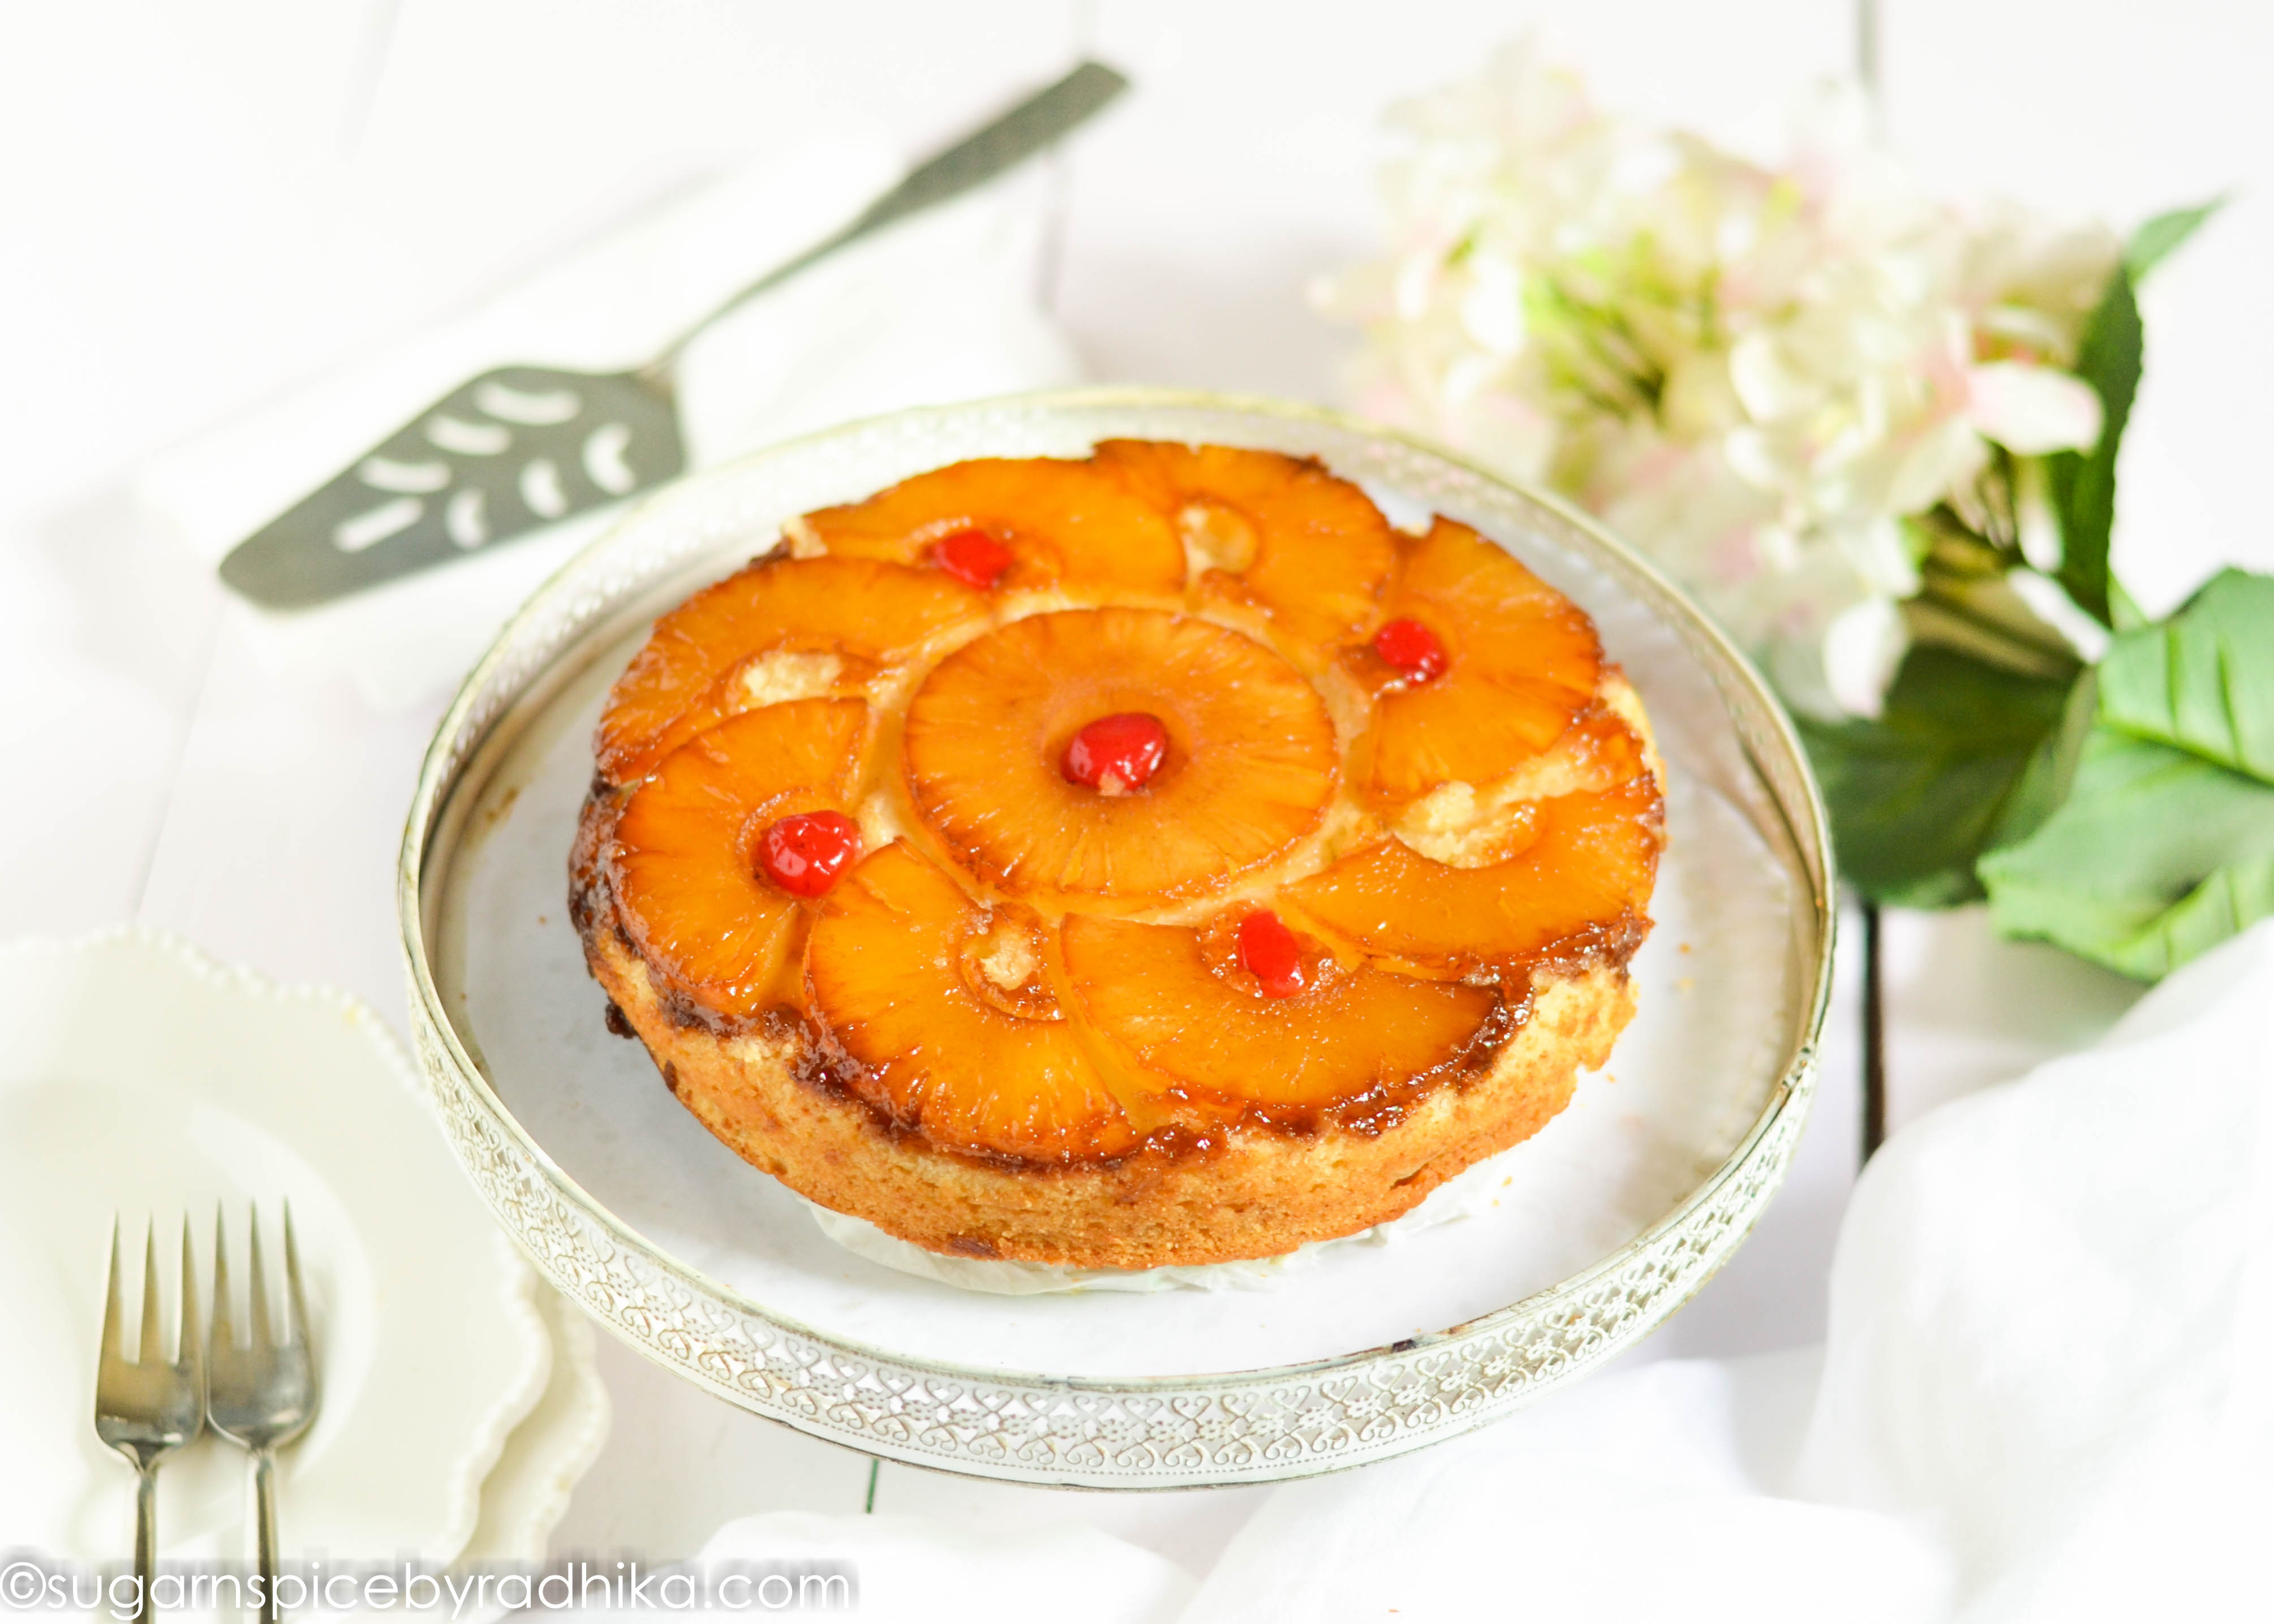 Pineapple Upside Down Cake (eggless)